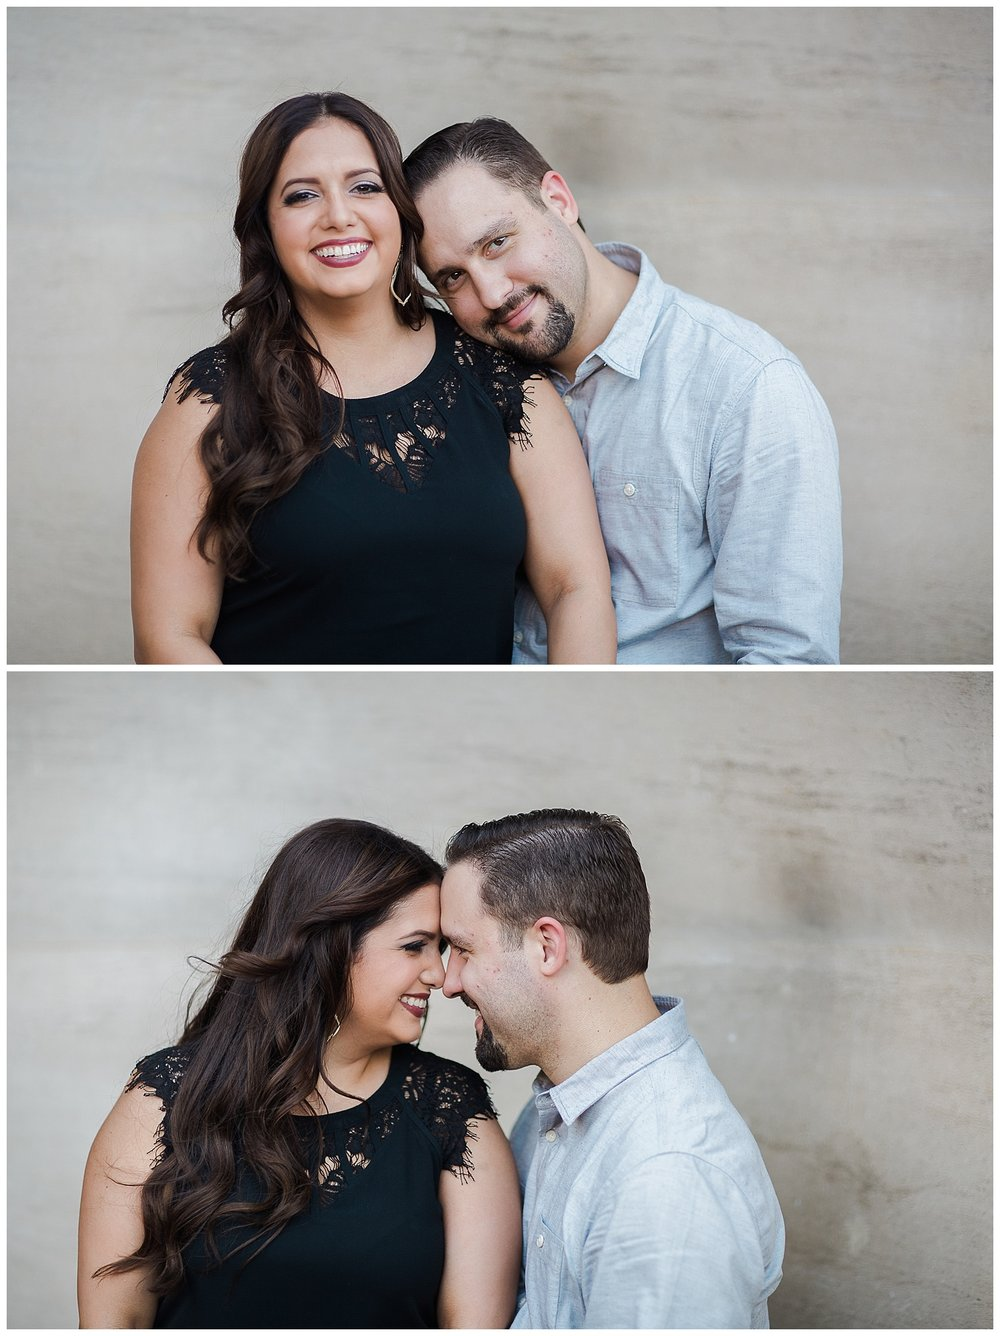 Annapolis, Maryland wedding photographer. Outdoor, Natural light gngagement photo session is a fun and casual experience, capturing your personality and relationship.